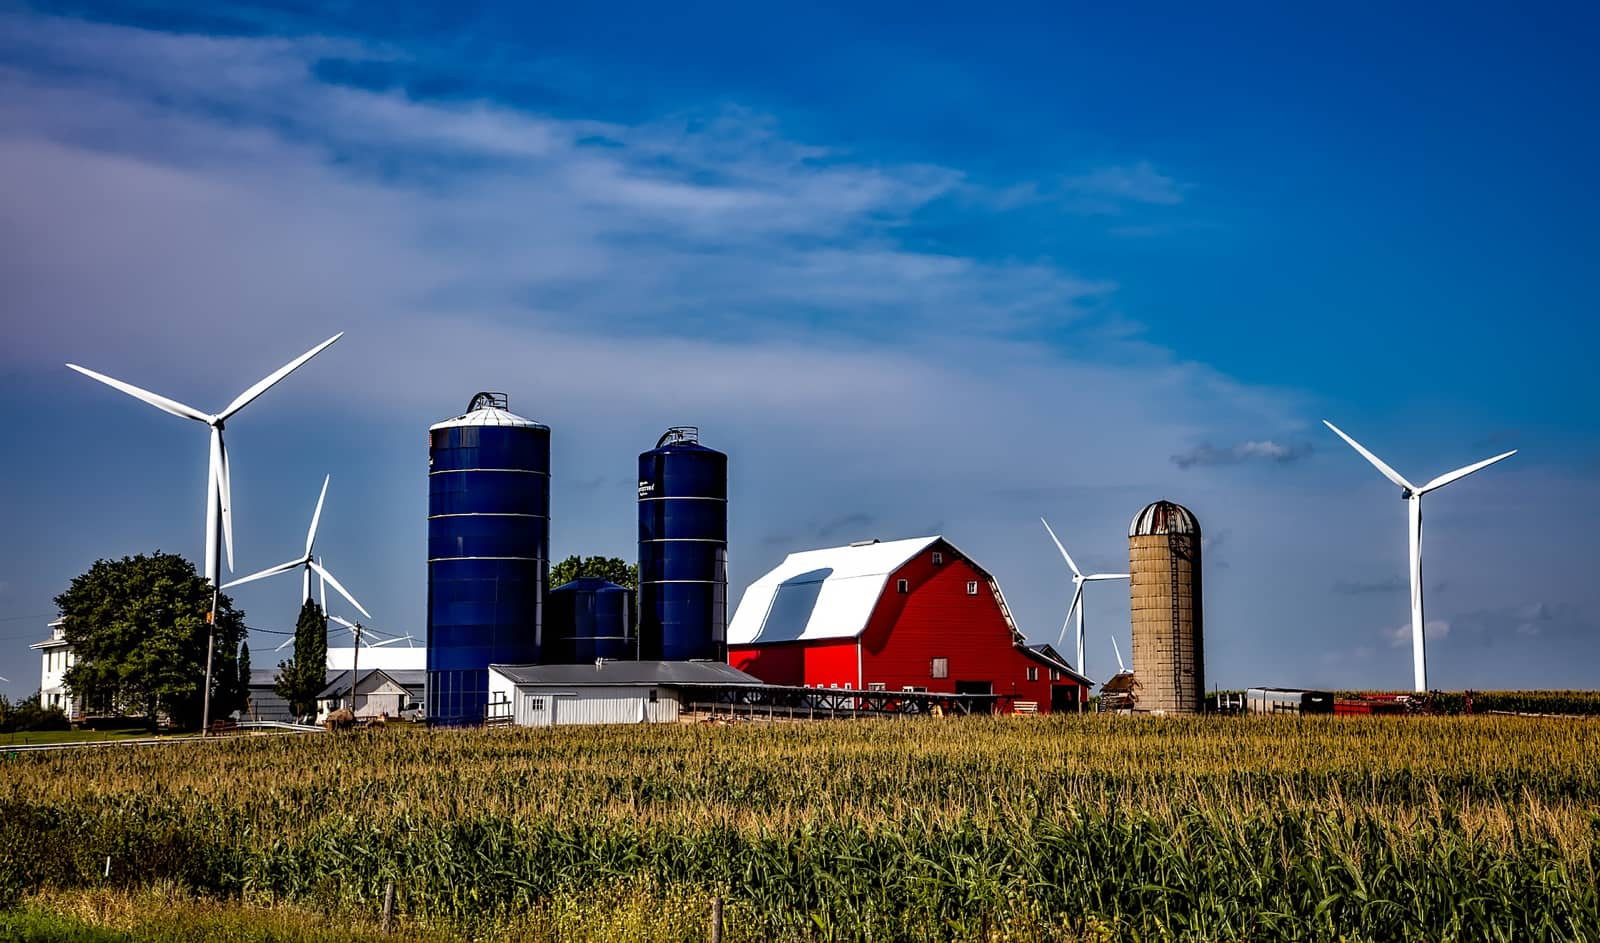 Image of a farm in Iowa. Maybe a new Apple data center could be next door